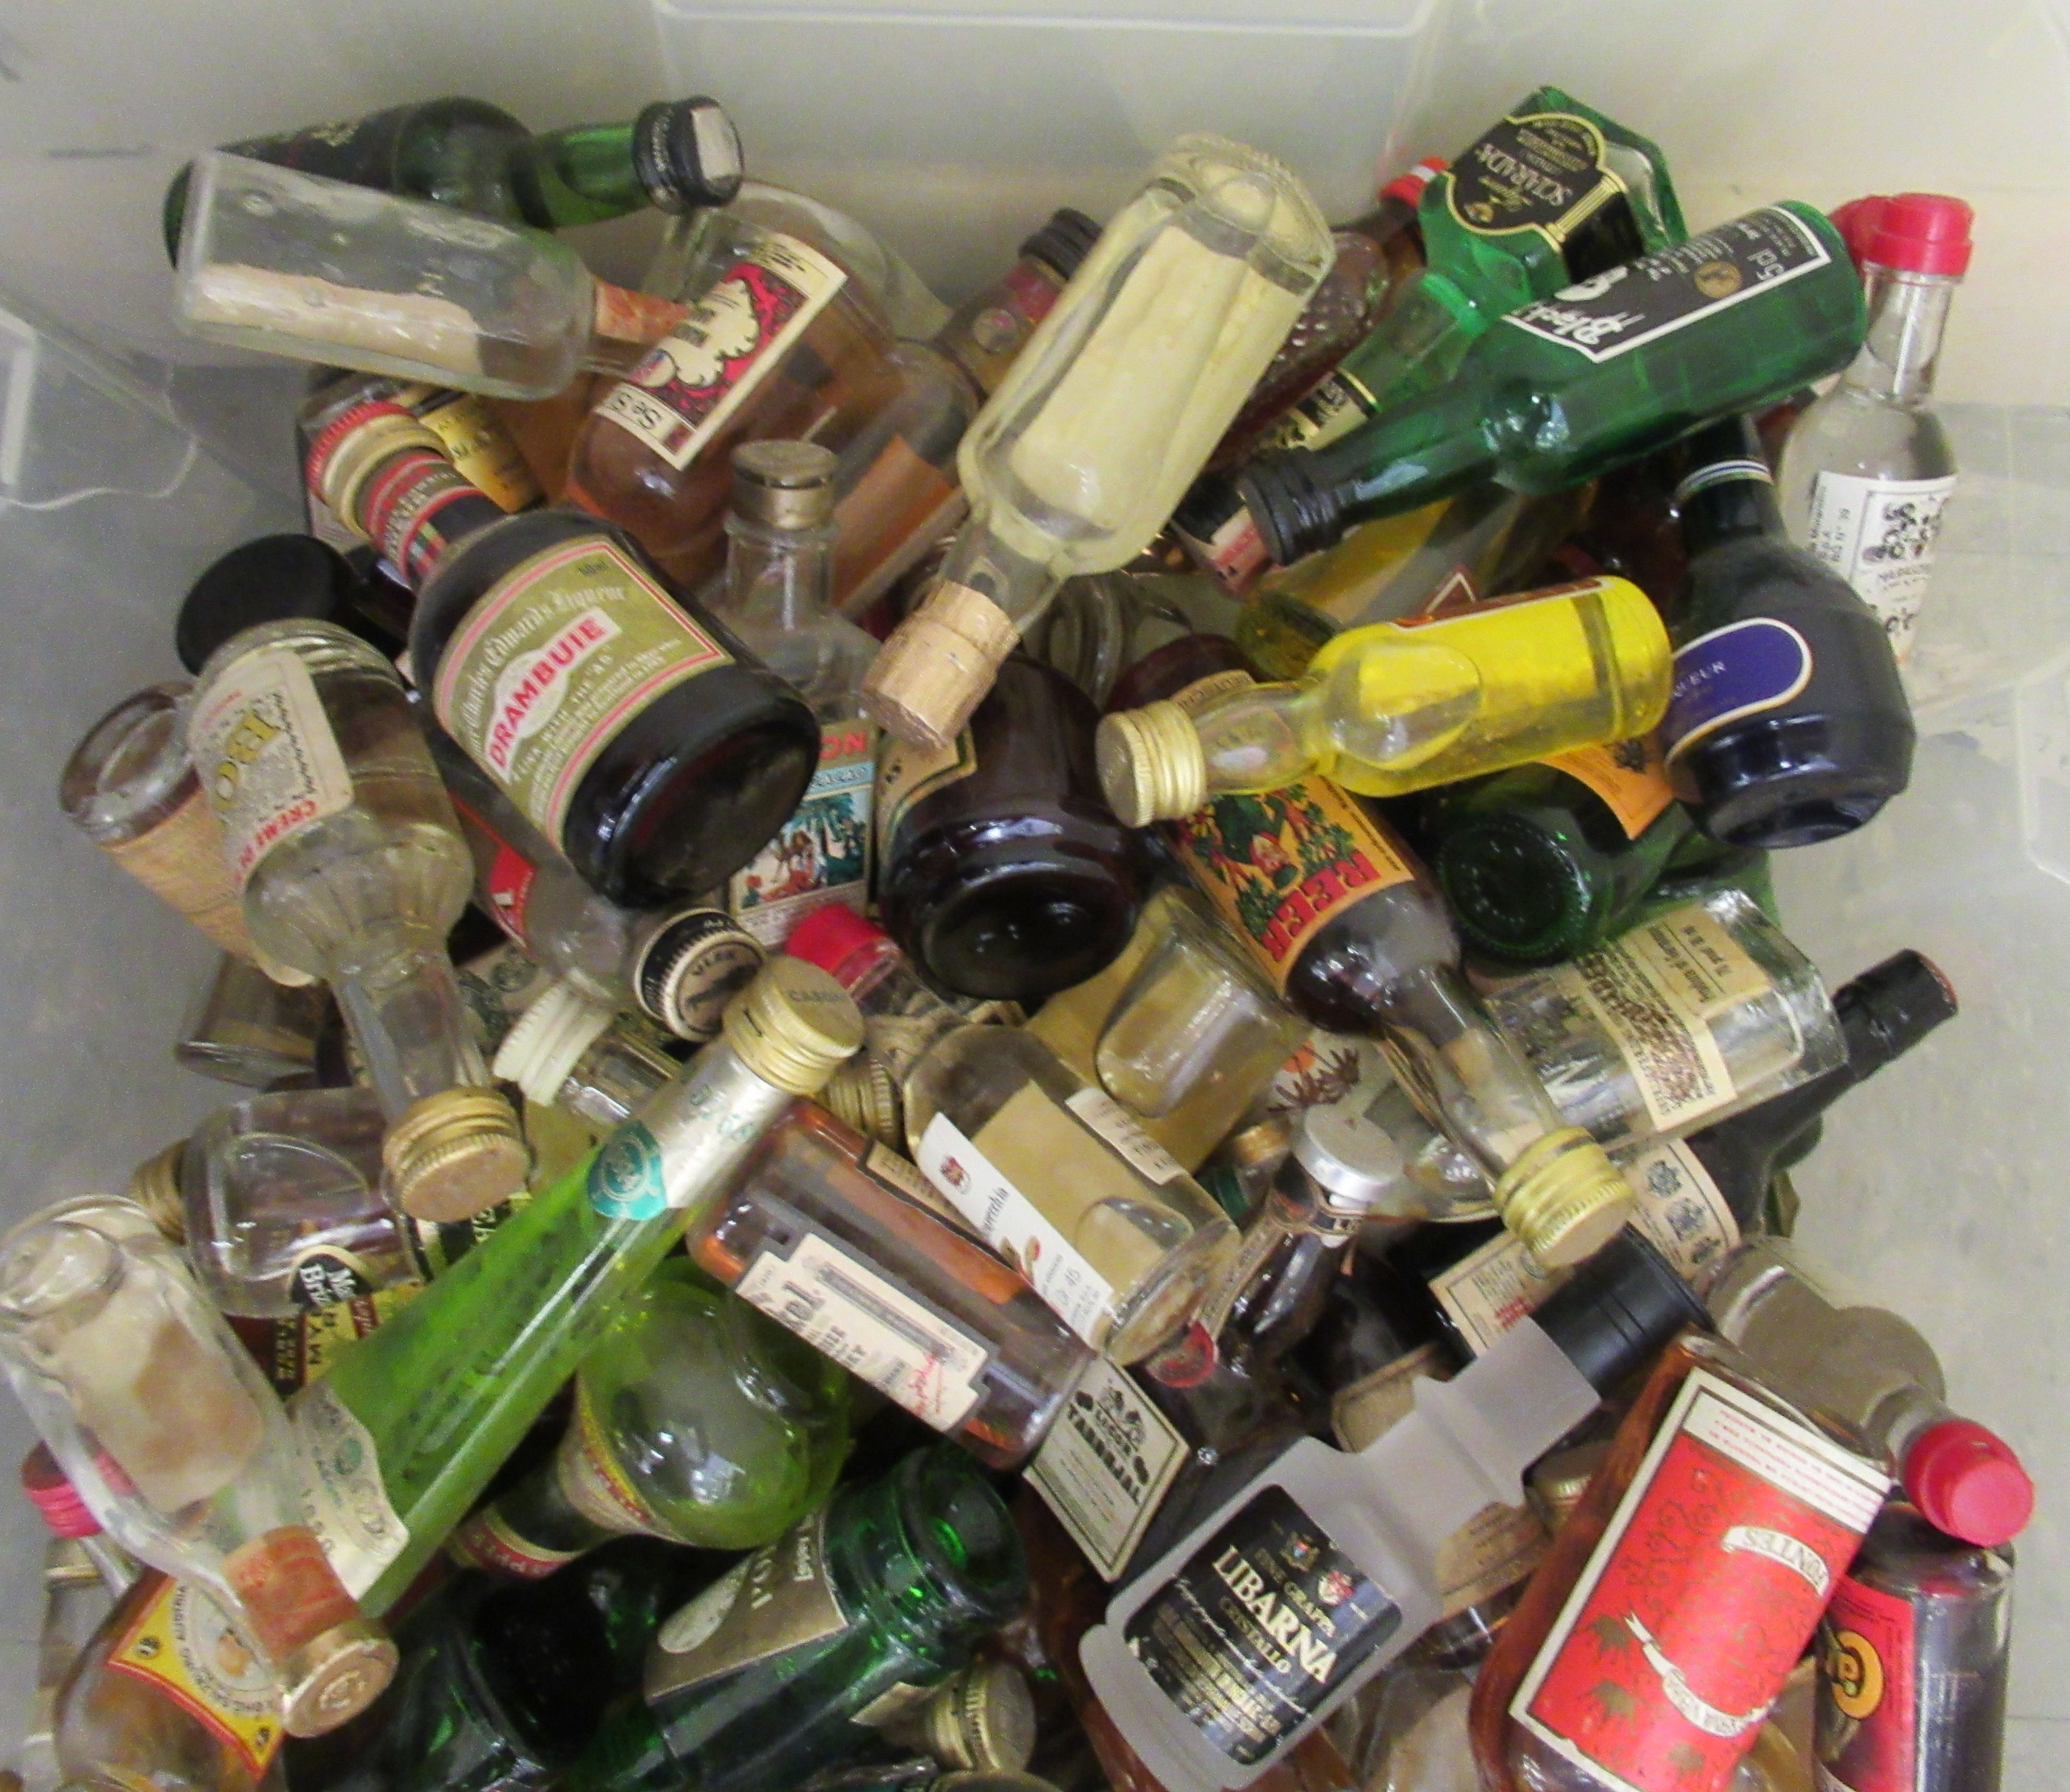 Approx. 300 spirit miniatures: to include whisky and liqueurs - Image 2 of 3